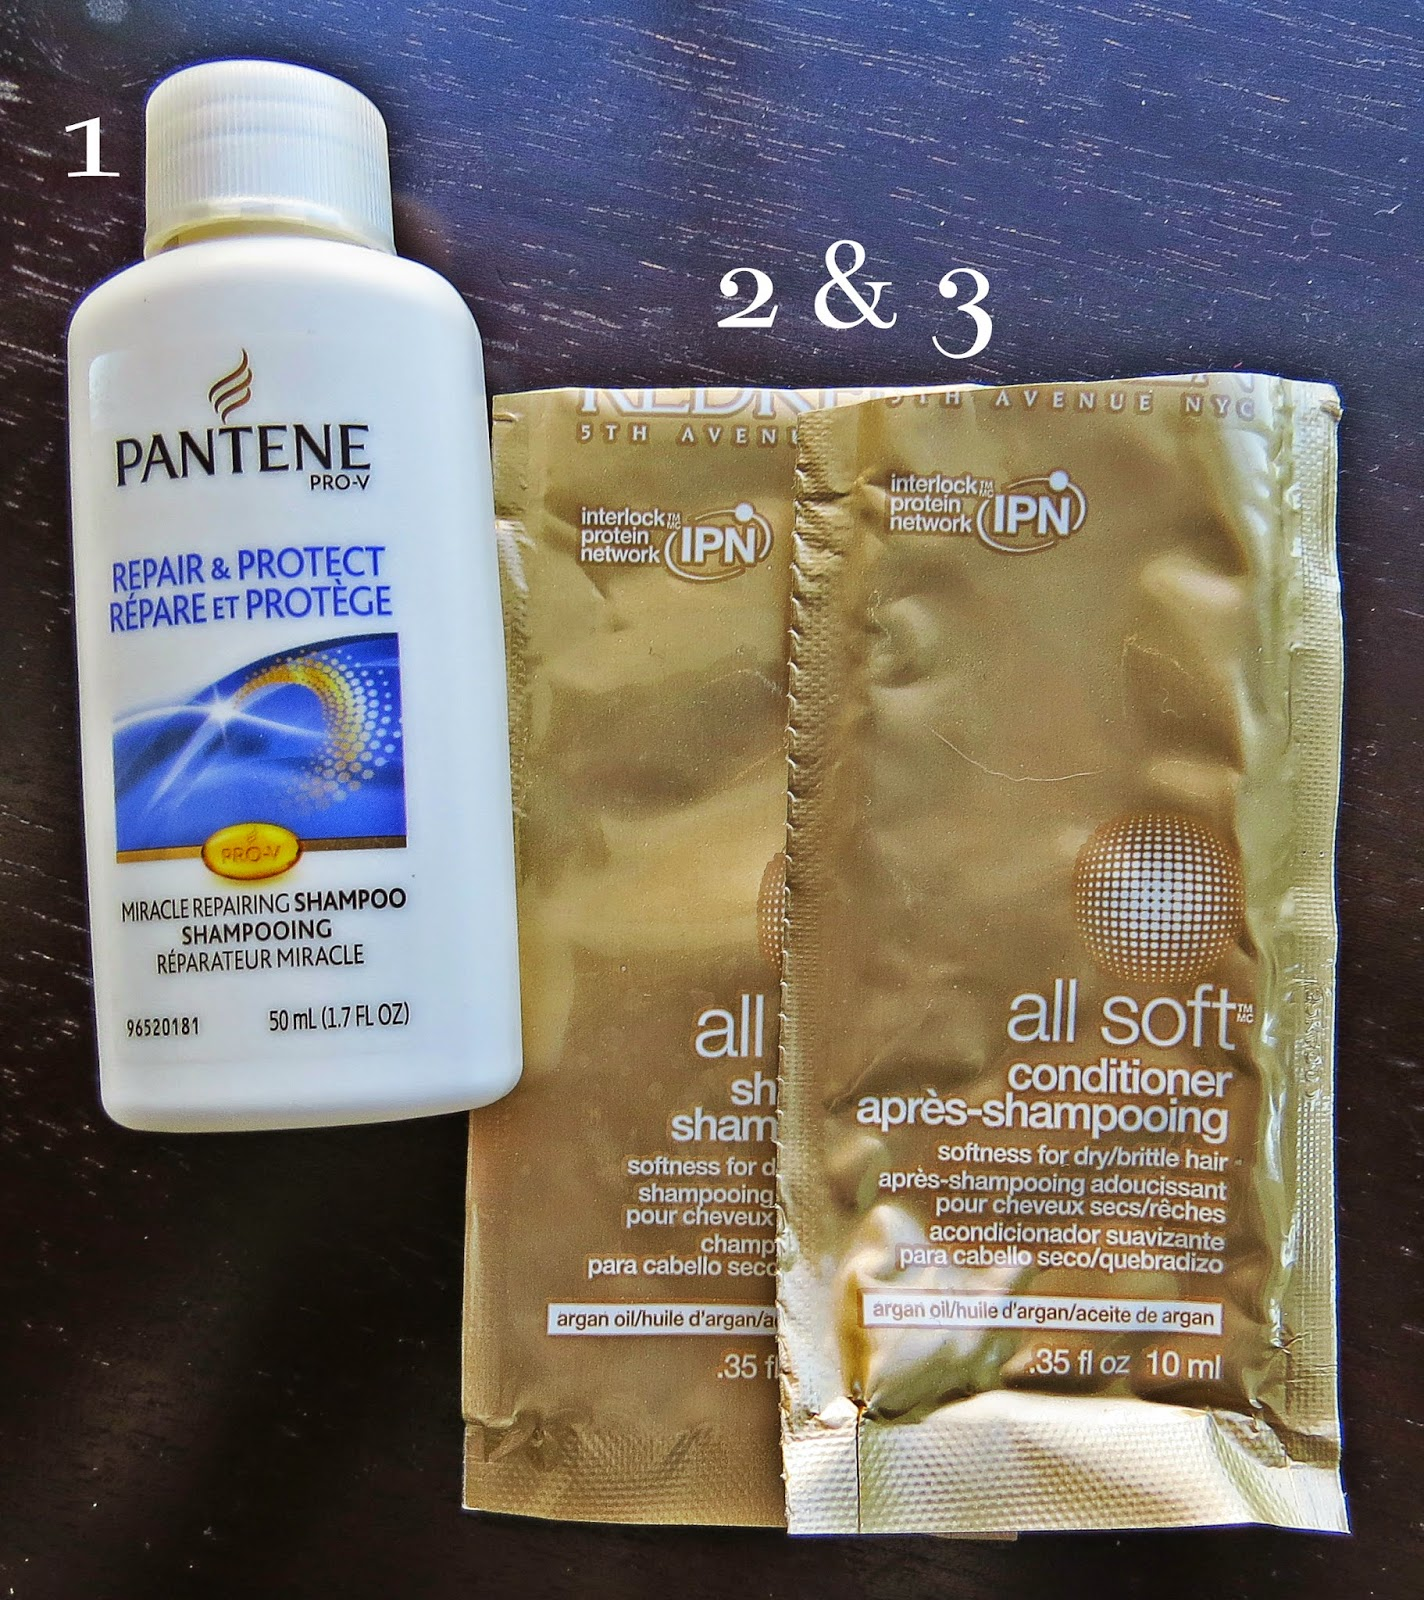 Pantene Repair & Protect Shampoo, Redken All Soft Shampoo and Conditioner